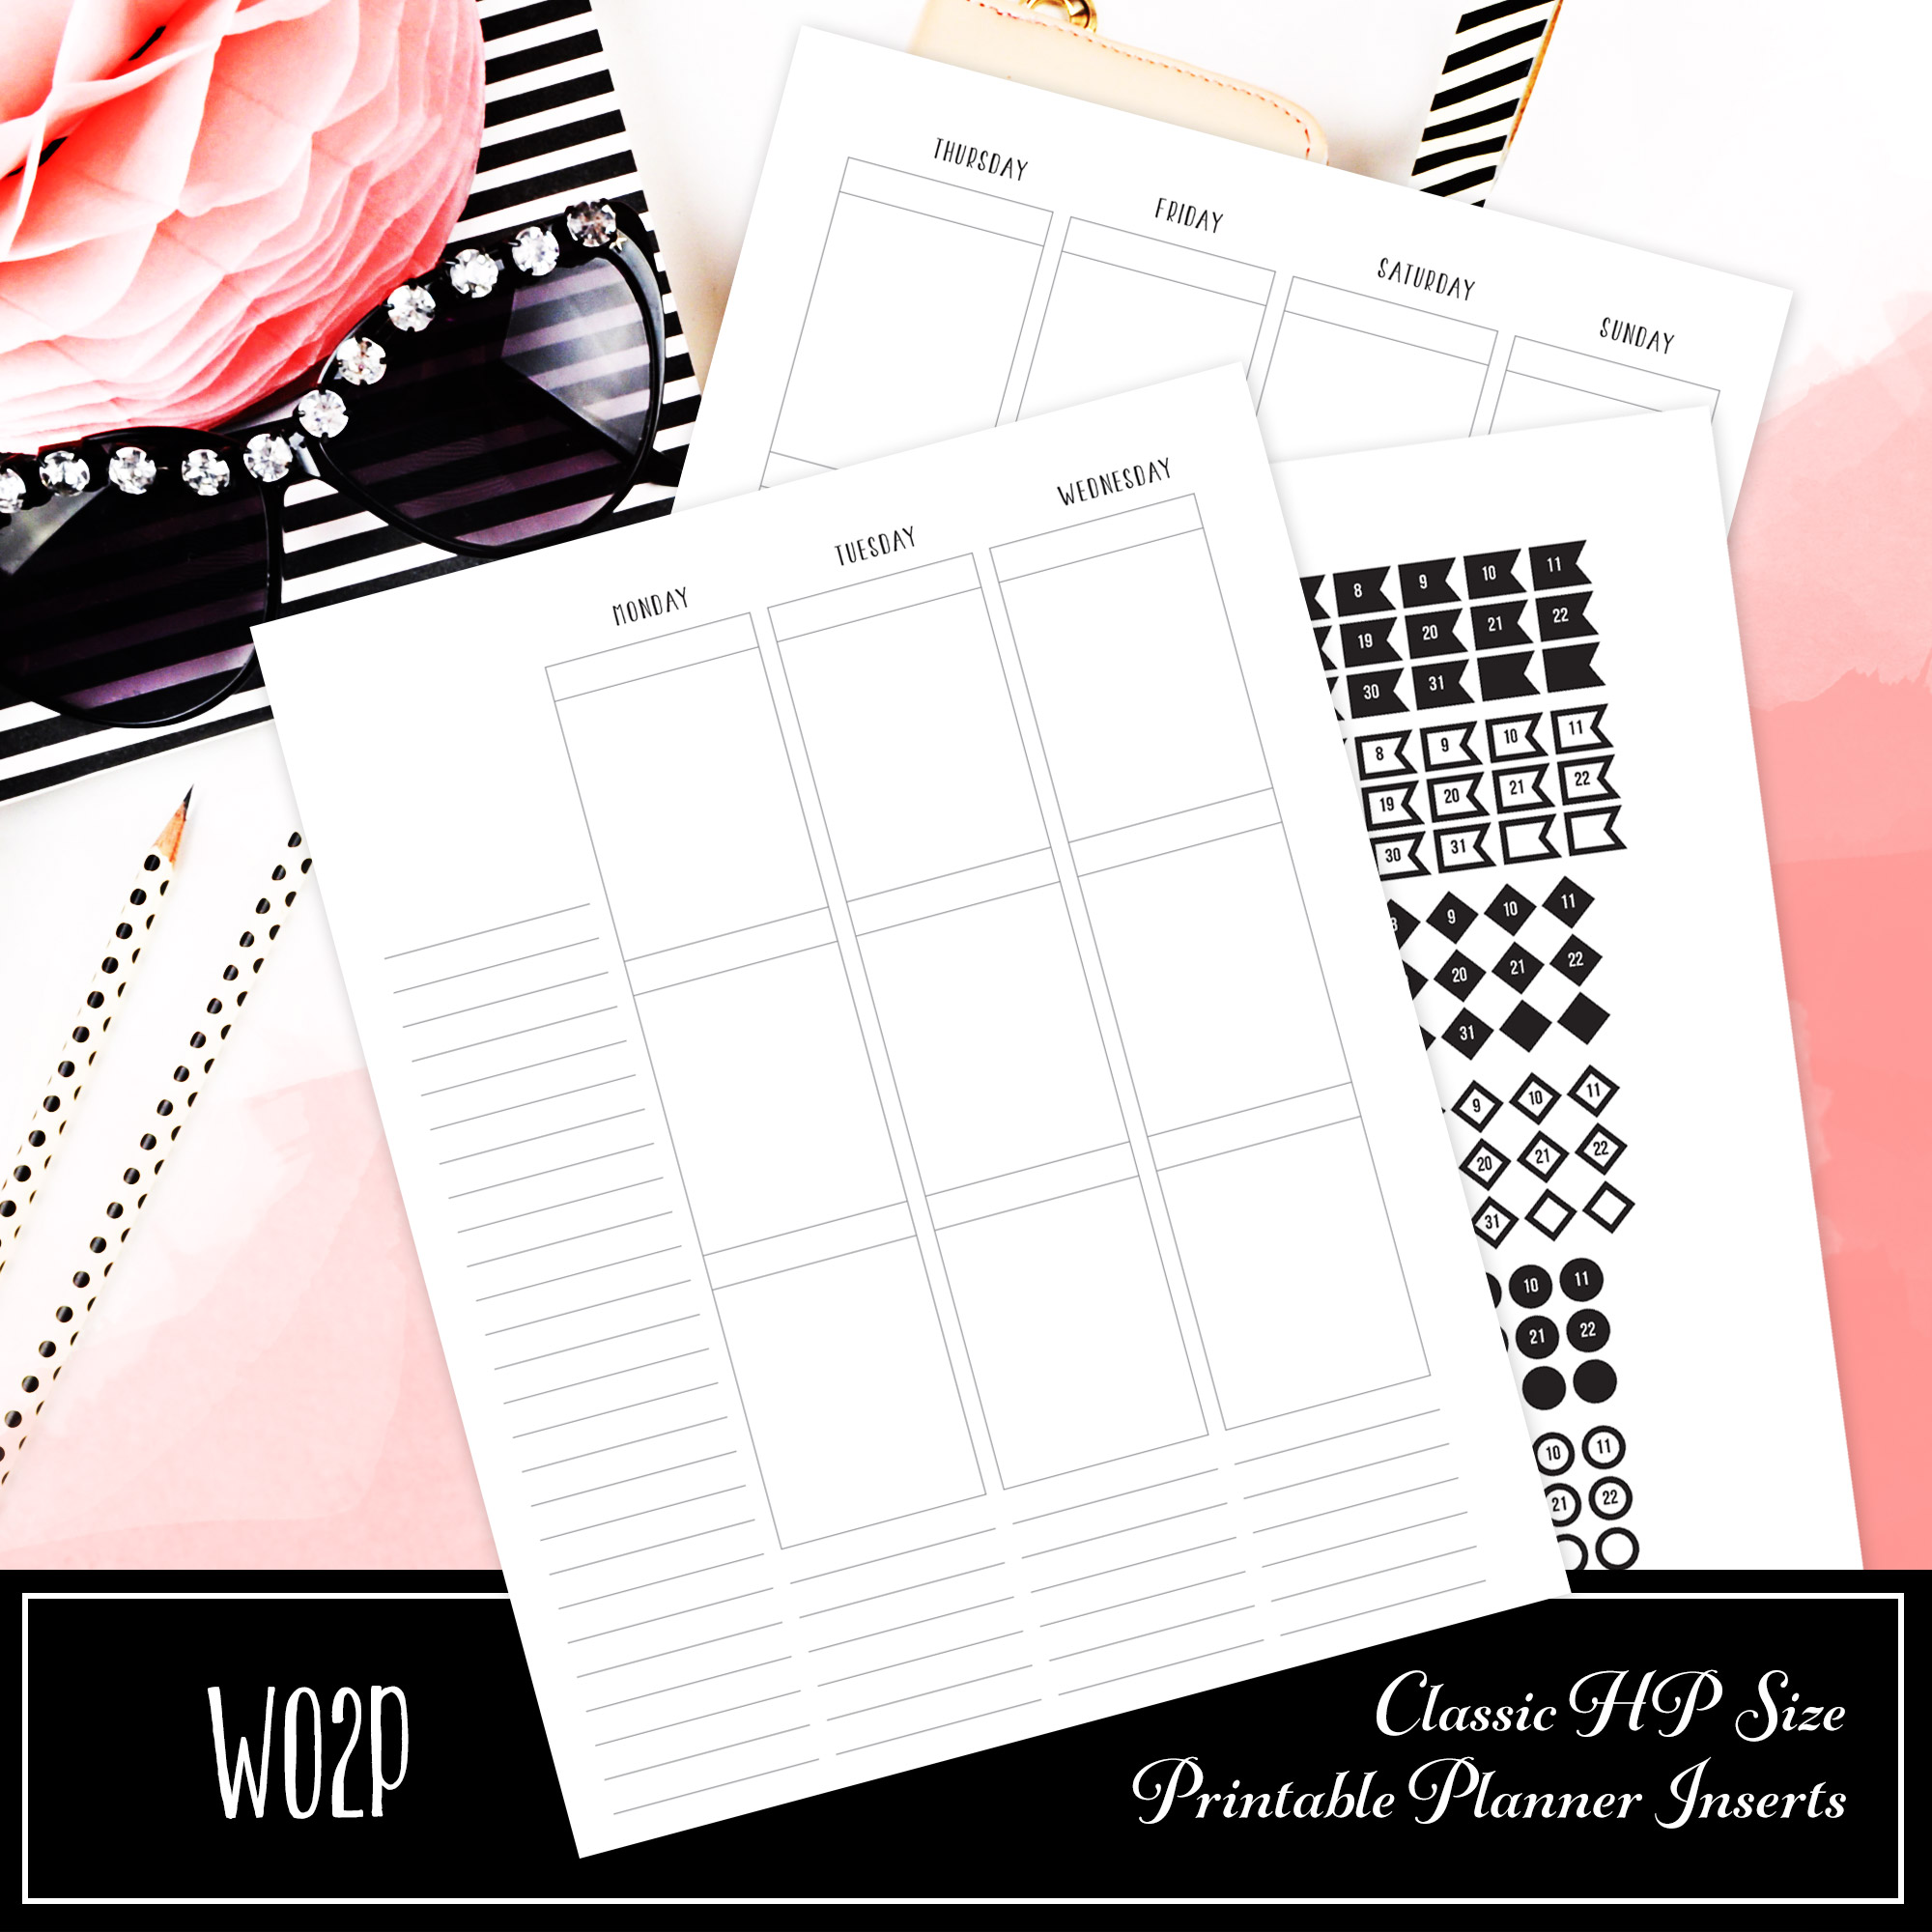 graphic relating to Hp Printable referred to as WO2P Clic HP Sizing Printable Planner Incorporate - Scraftastic